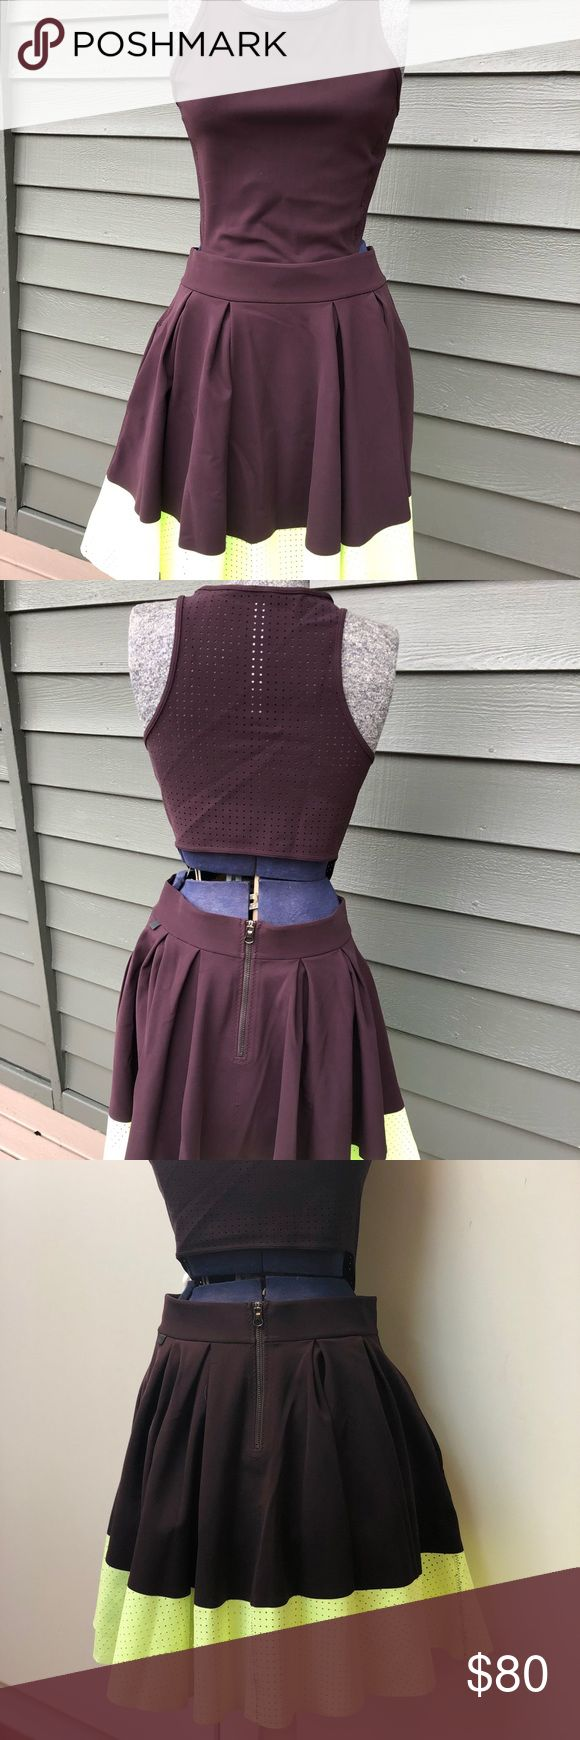 Lululemon dress Adorable NWOT, Lululemon Away dress with slight open back, pockets and fun details. Back and bottom are perforated. Different photos to show the color better. Eggplant with neon green bottom. lululemon athletica Dresses